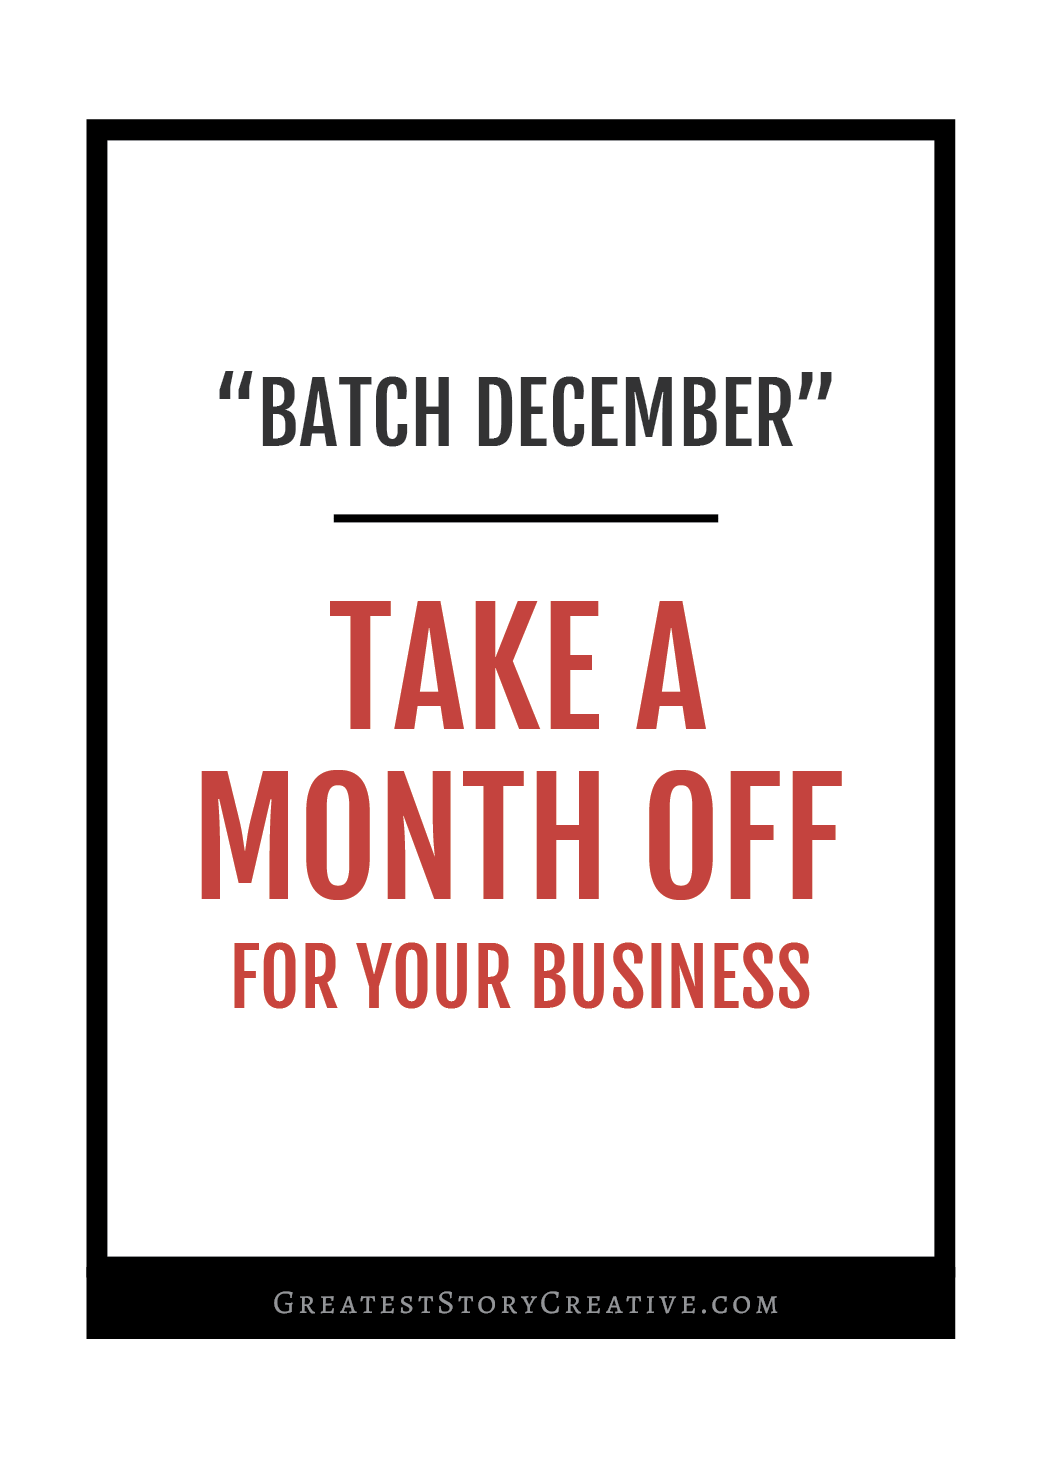 How to Take a Full Month Off For Business Development (GS Batch December) | Greatest Story for Business Blog